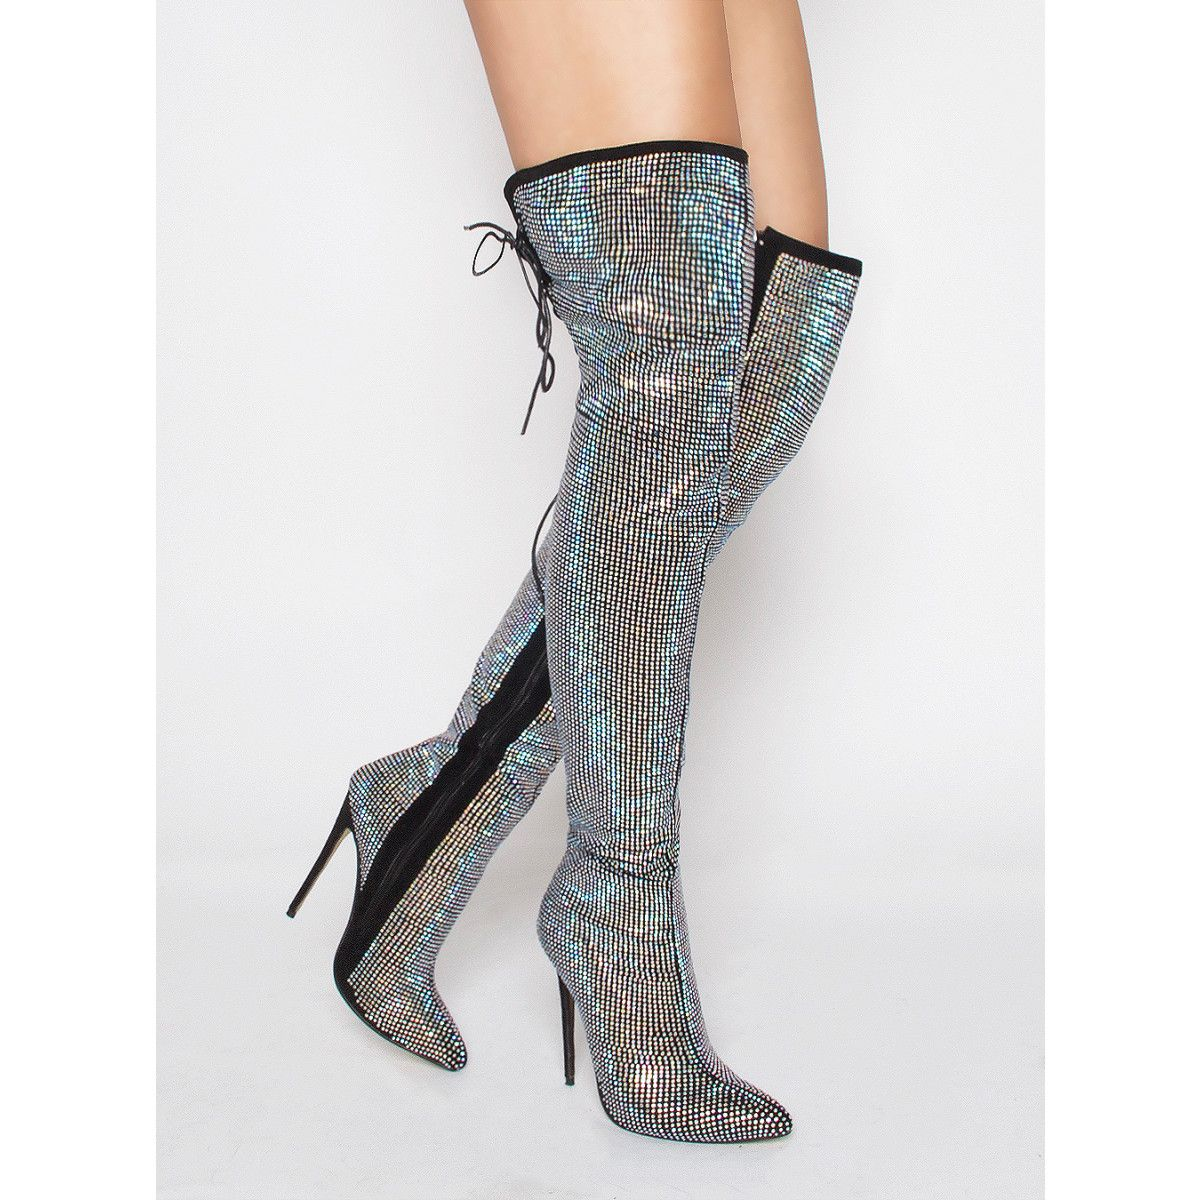 b419cf96573 Akila Black Suede Rainbow Diamante Thigh High Boots   Simmi Shoes ...